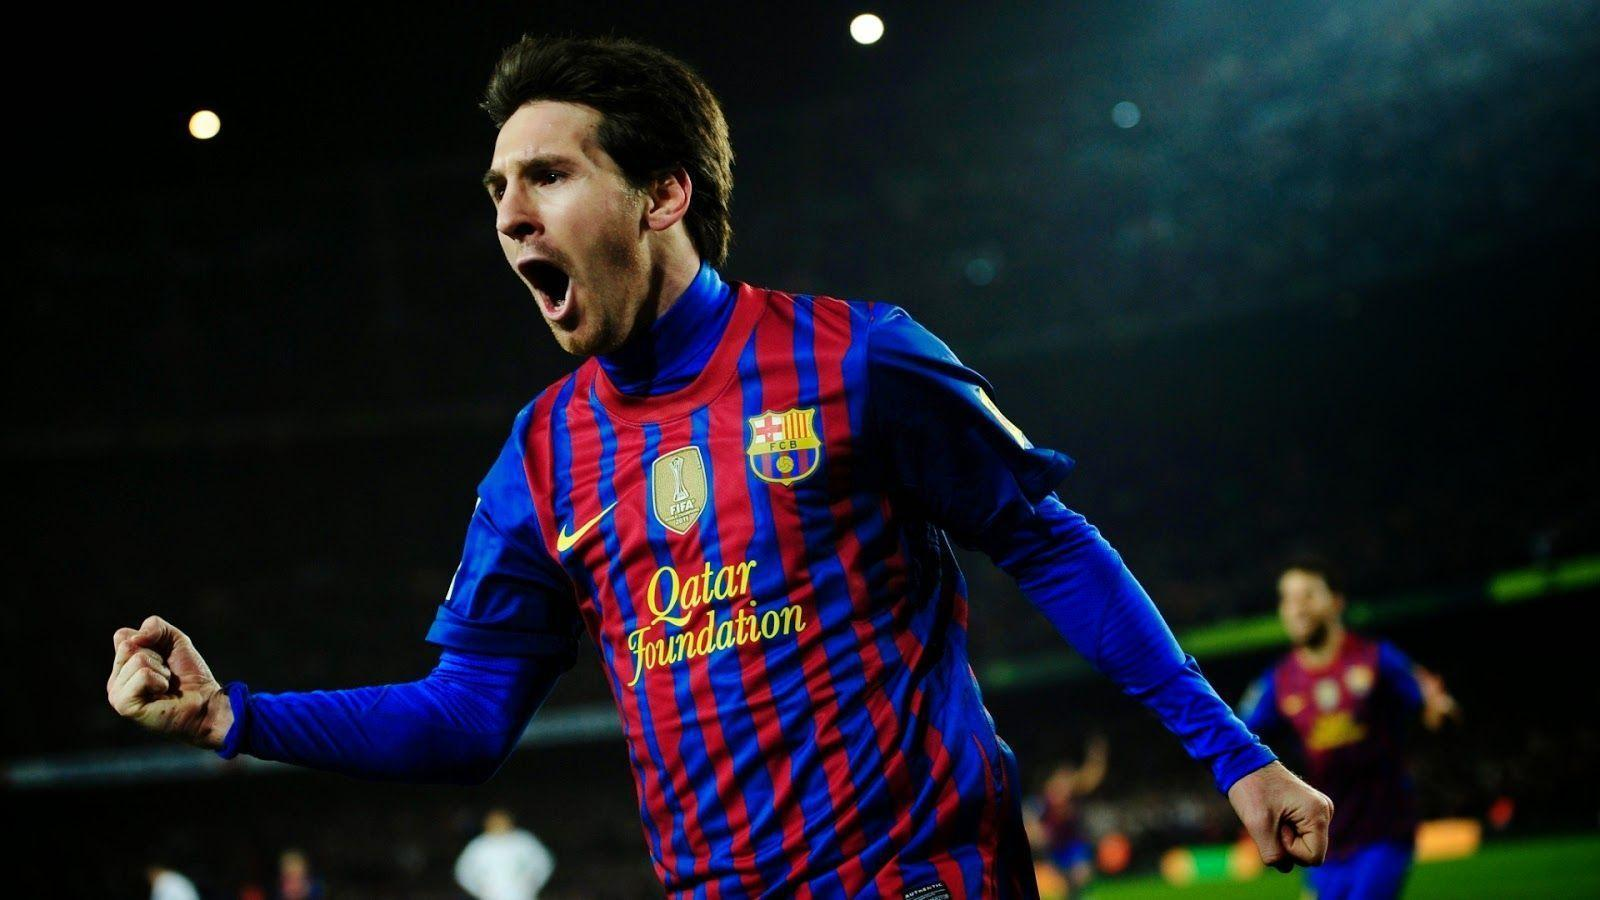 Lionel Messi Wallpapers 2016 1600x900